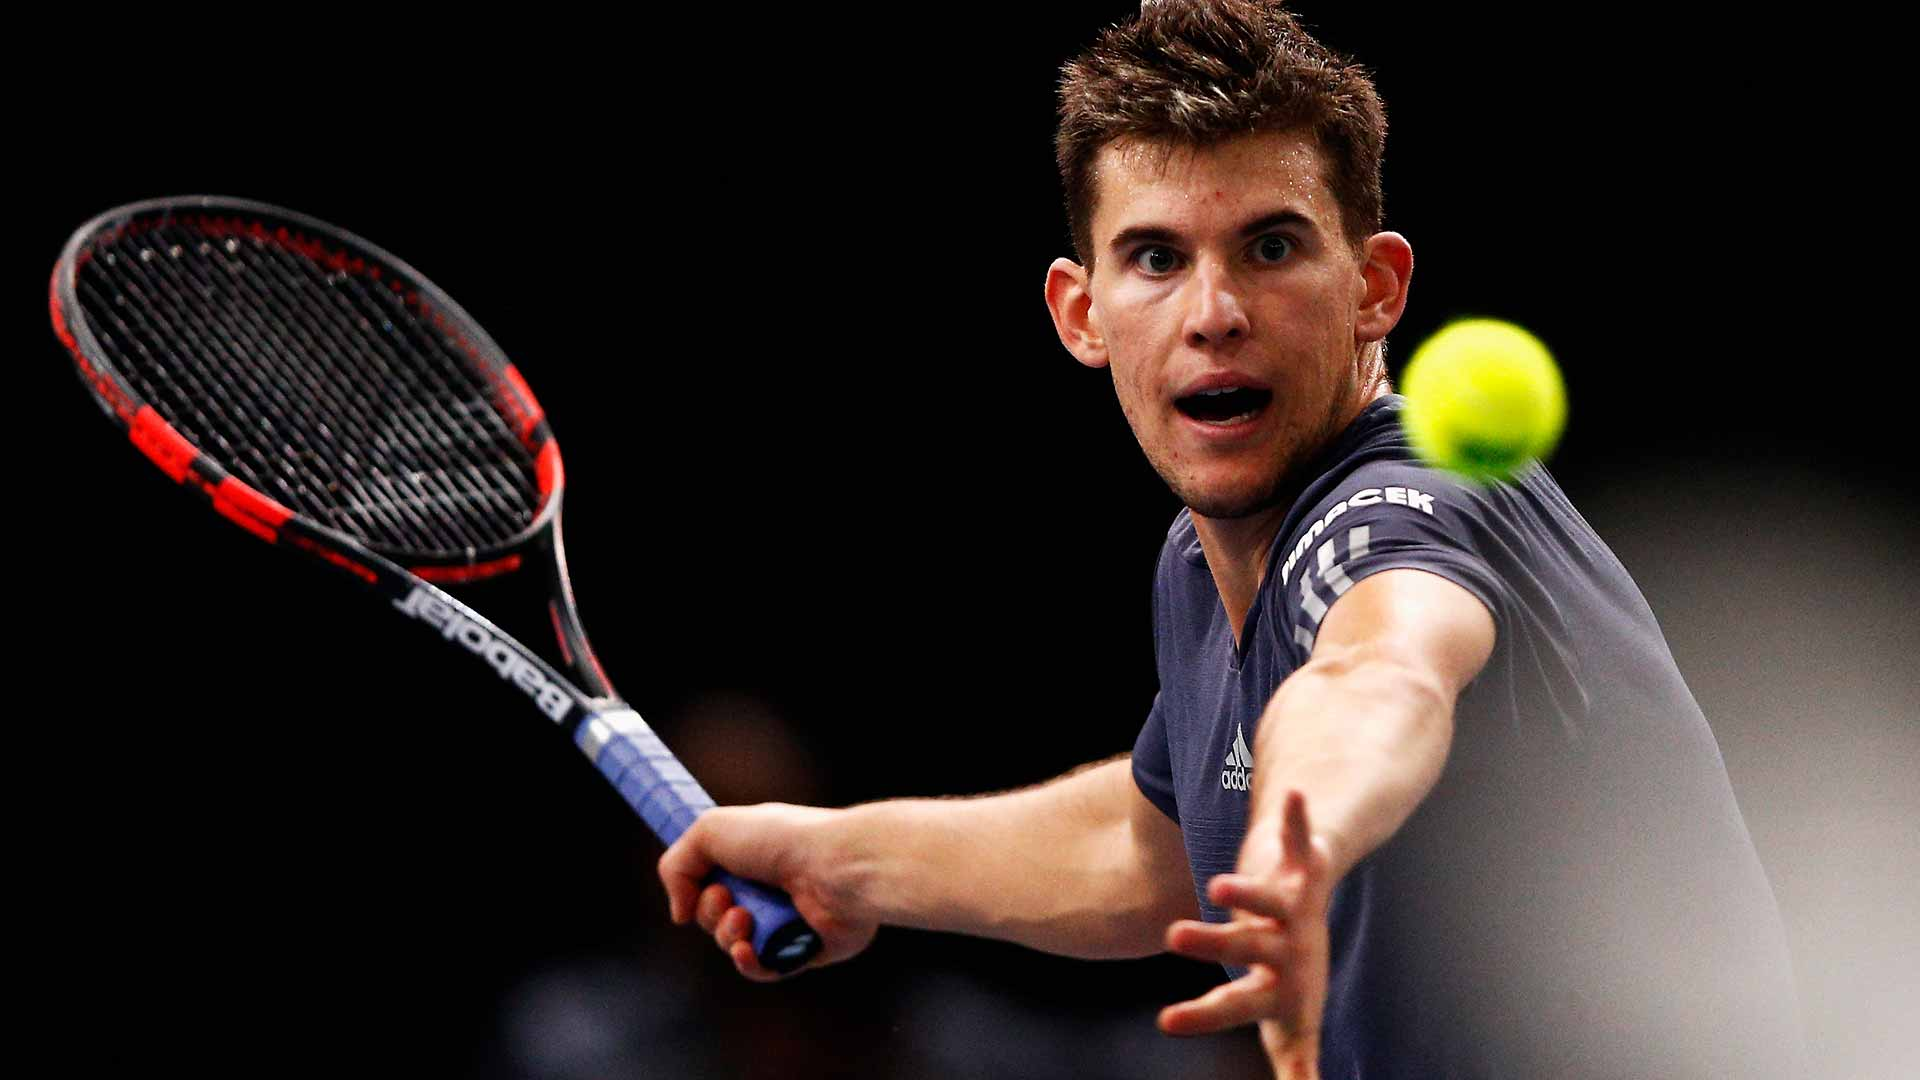 Top 10 Tennis Players in 2017 3